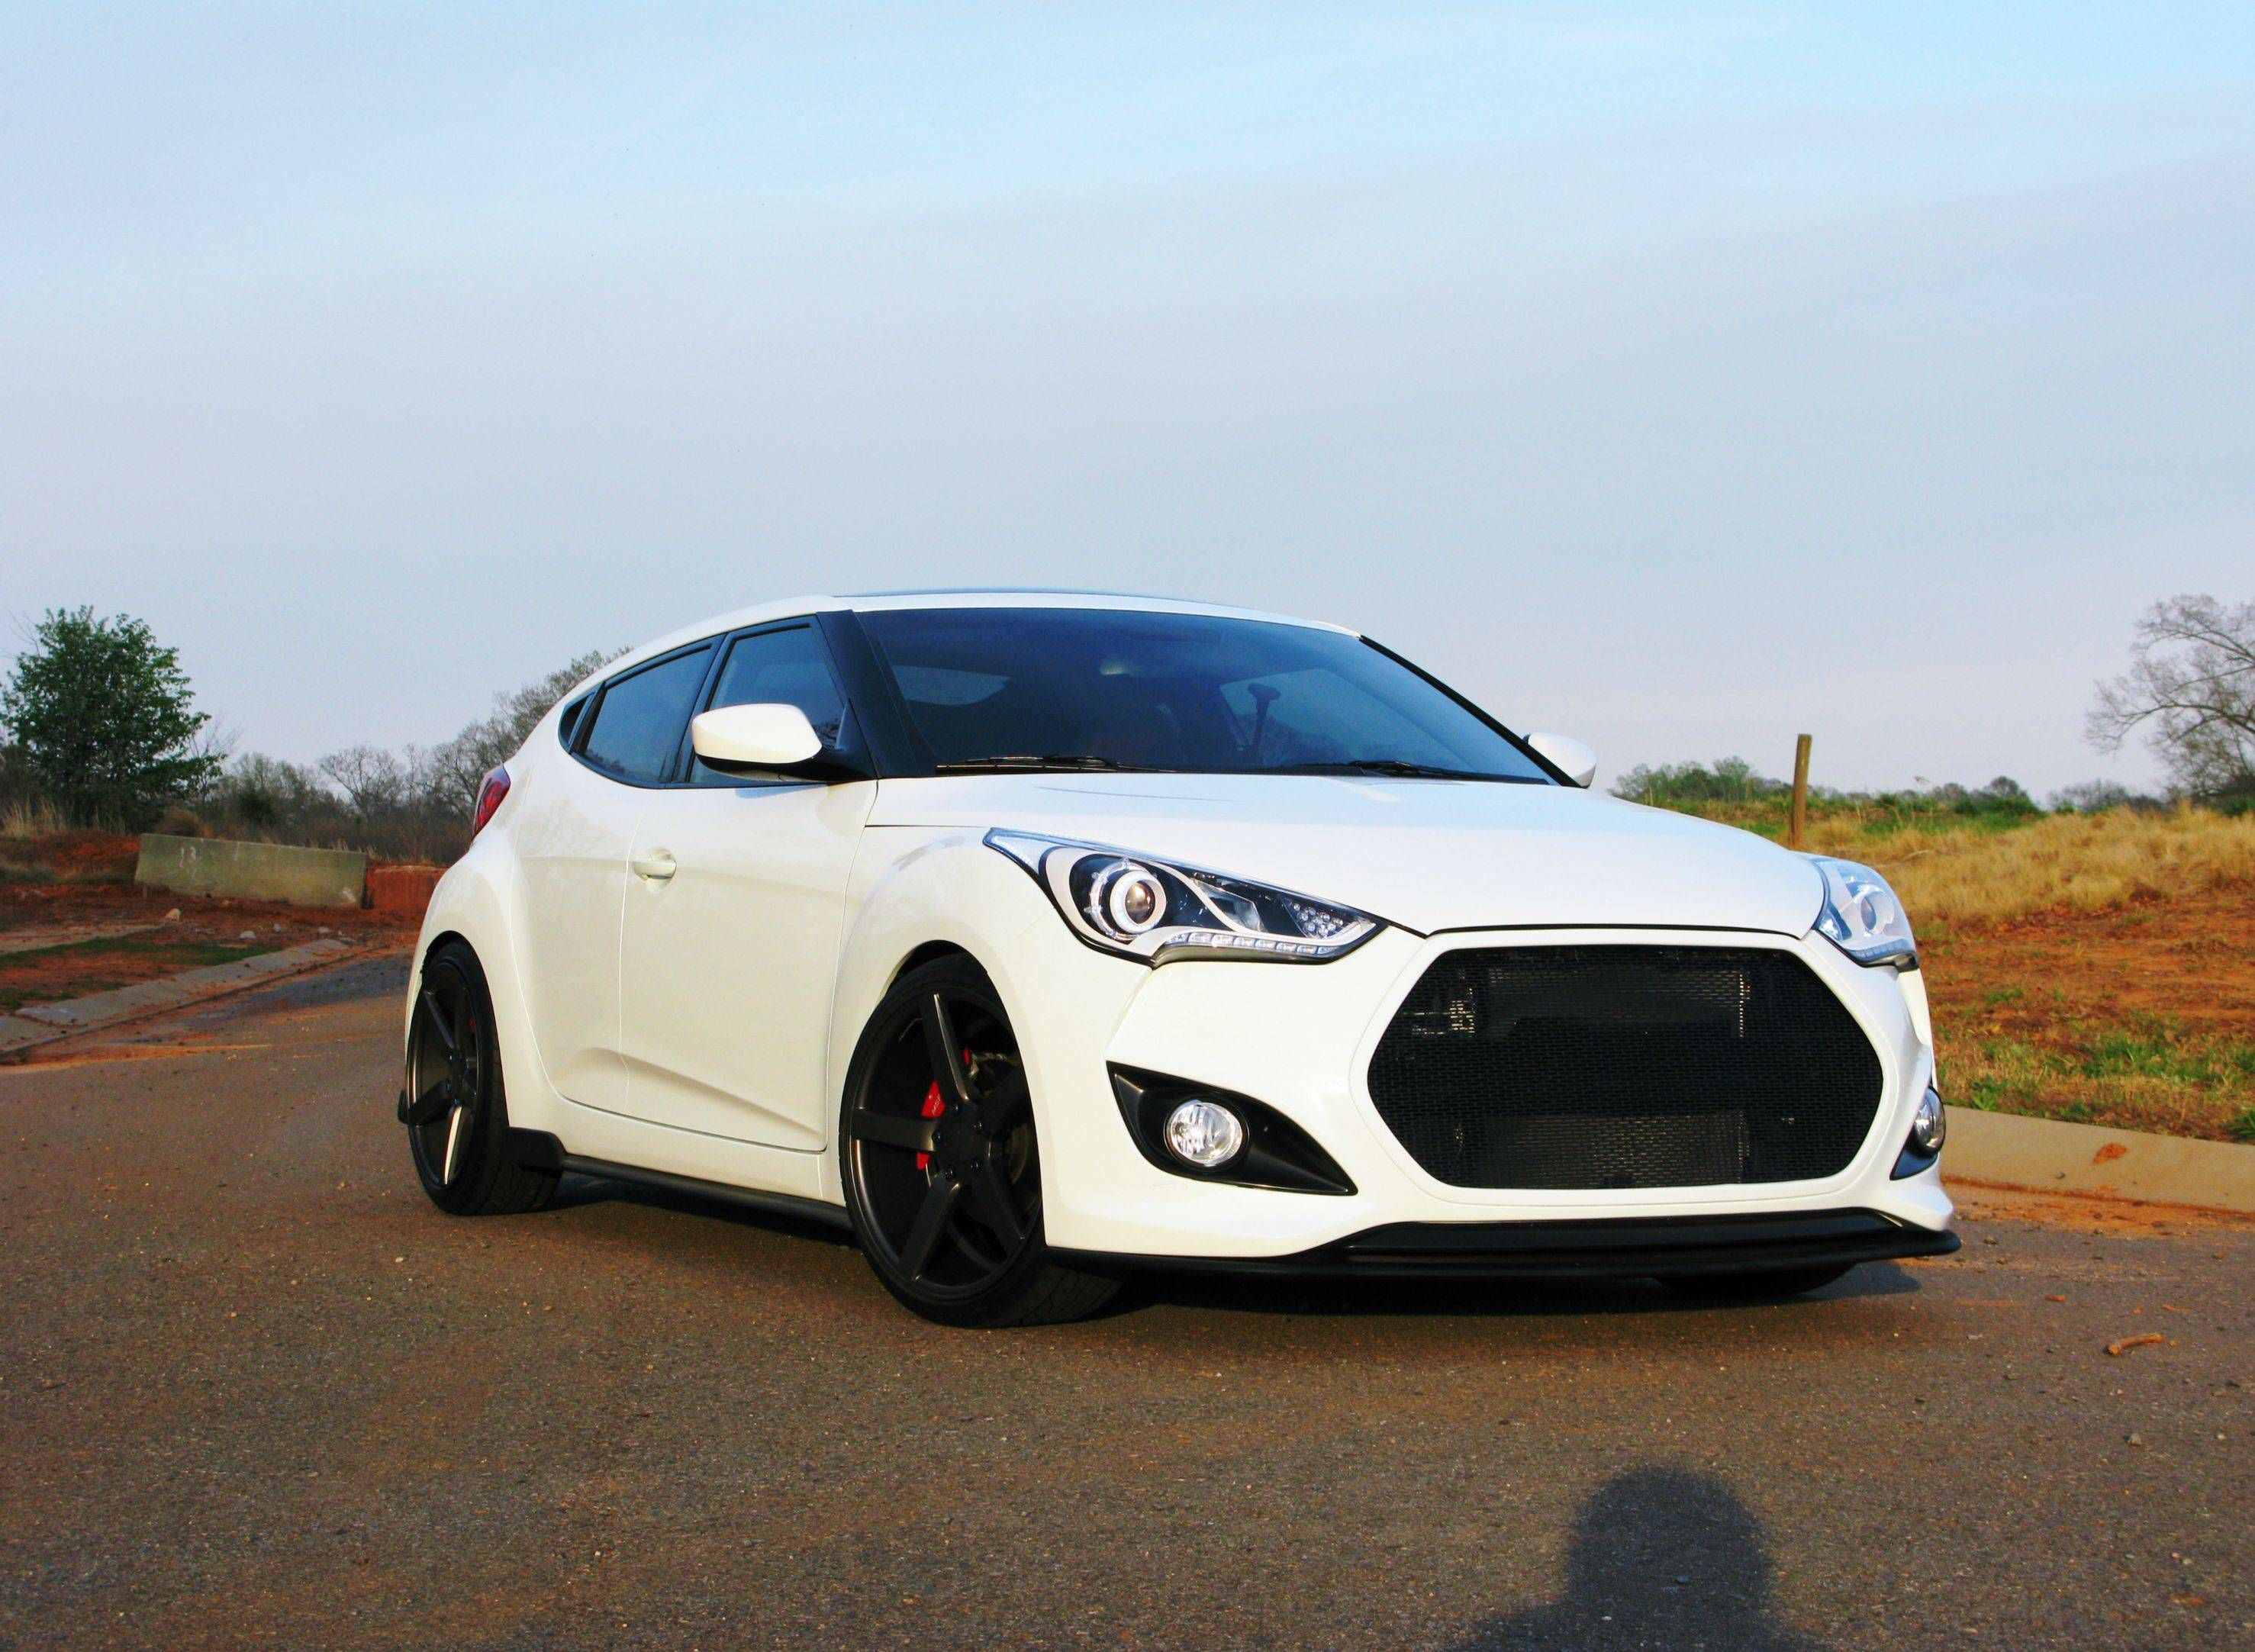 photo 1 Hyundai Veloster custom wheels Vossen CV3 19x8 5 ET 32